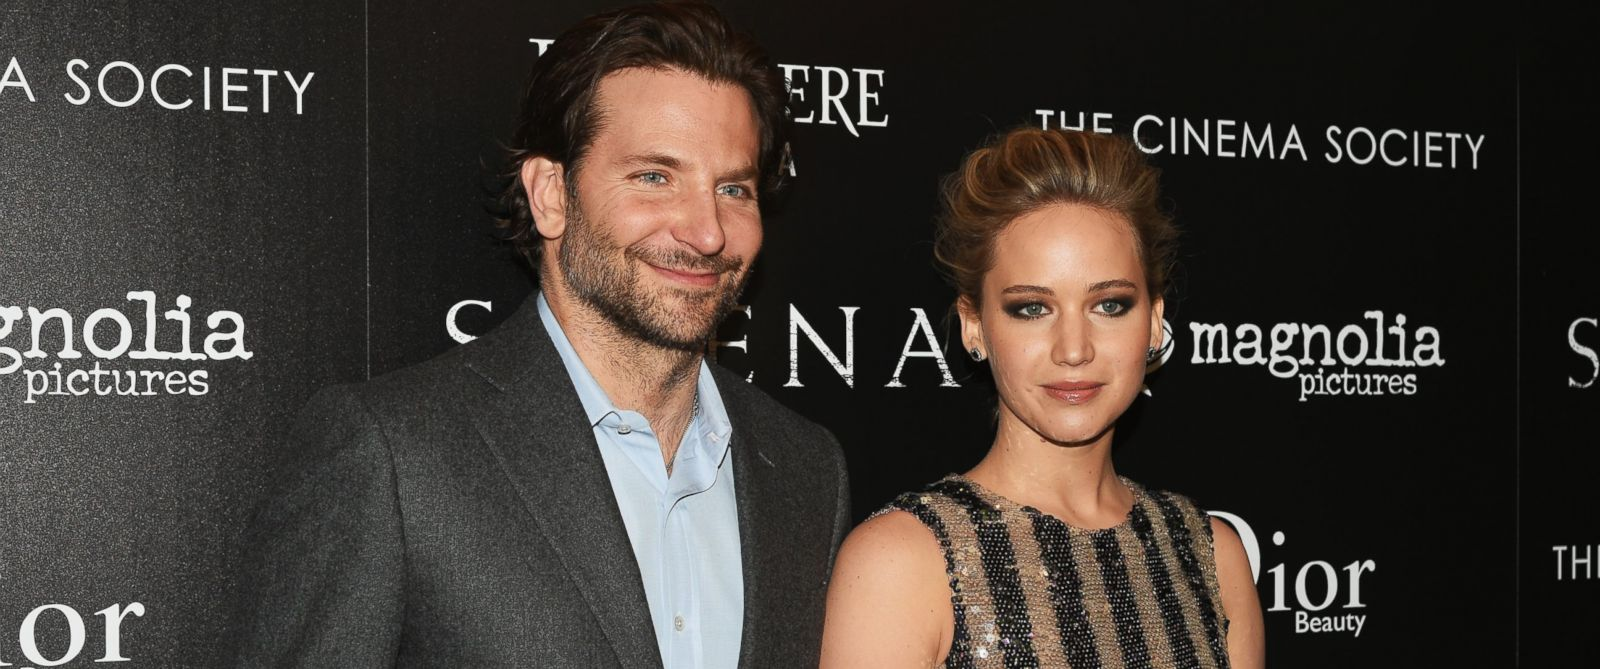 bradley cooper responds to jennifer lawrence s essay on gender pay bradley cooper responds to jennifer lawrence s essay on gender pay gap